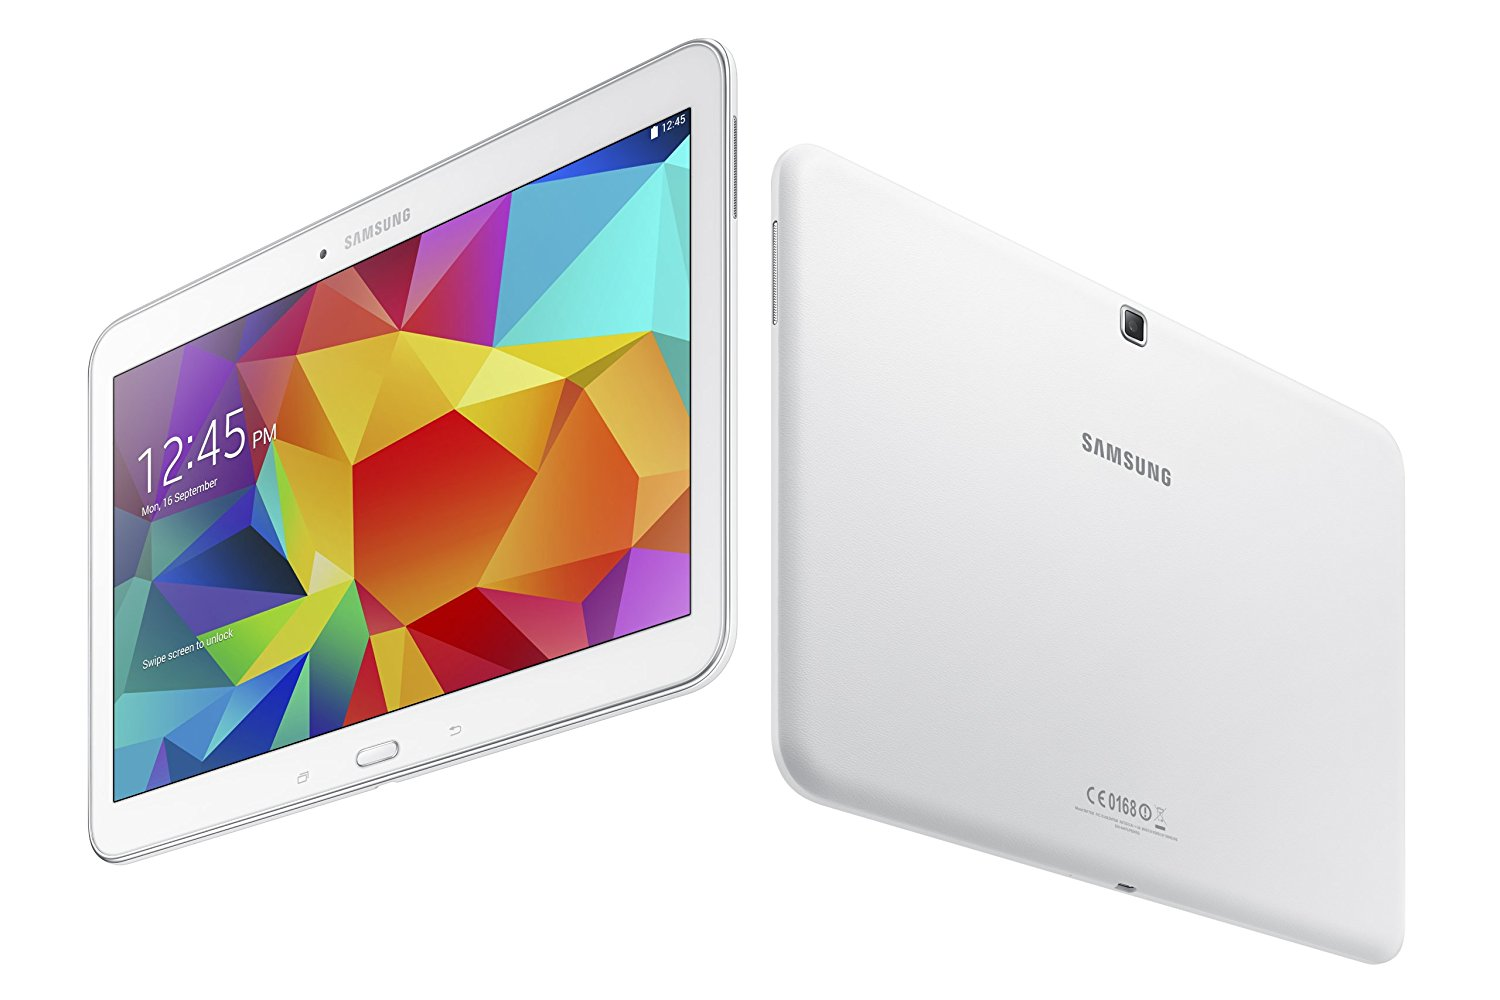 samsung galaxy tab 4 10 1 inch tablet features. Black Bedroom Furniture Sets. Home Design Ideas